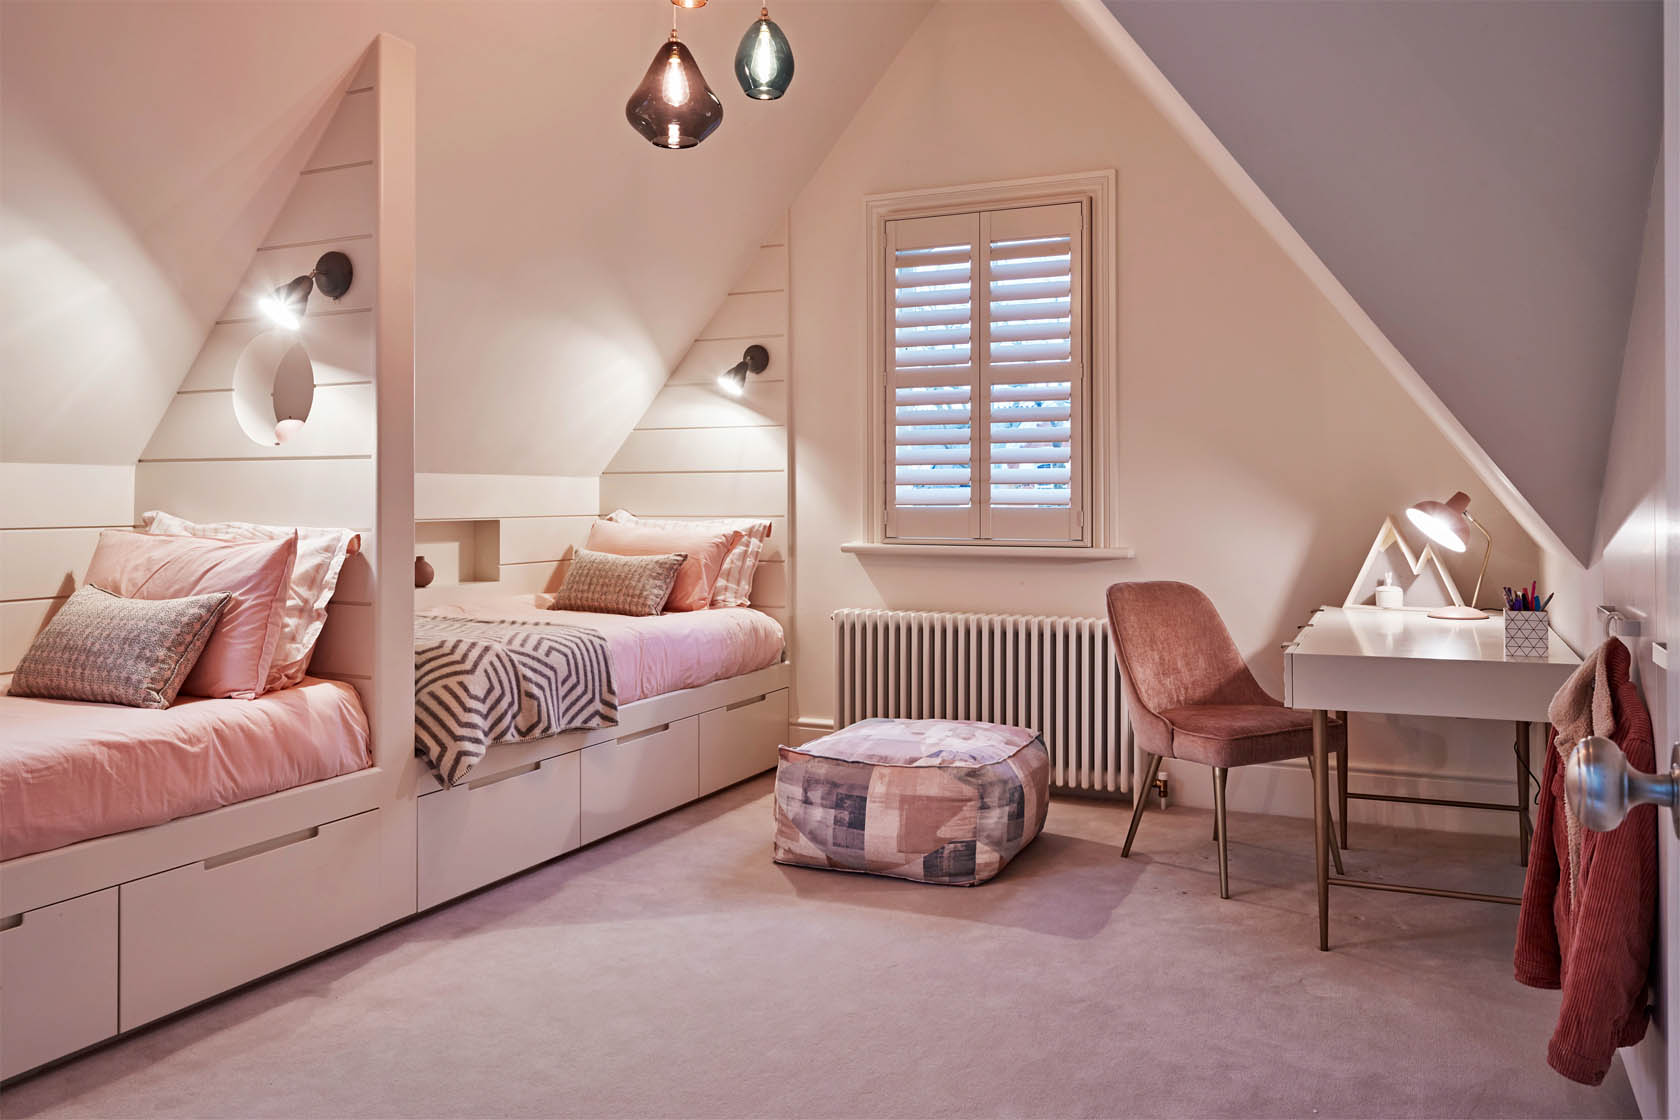 Converting An Attic Into A Bedroom